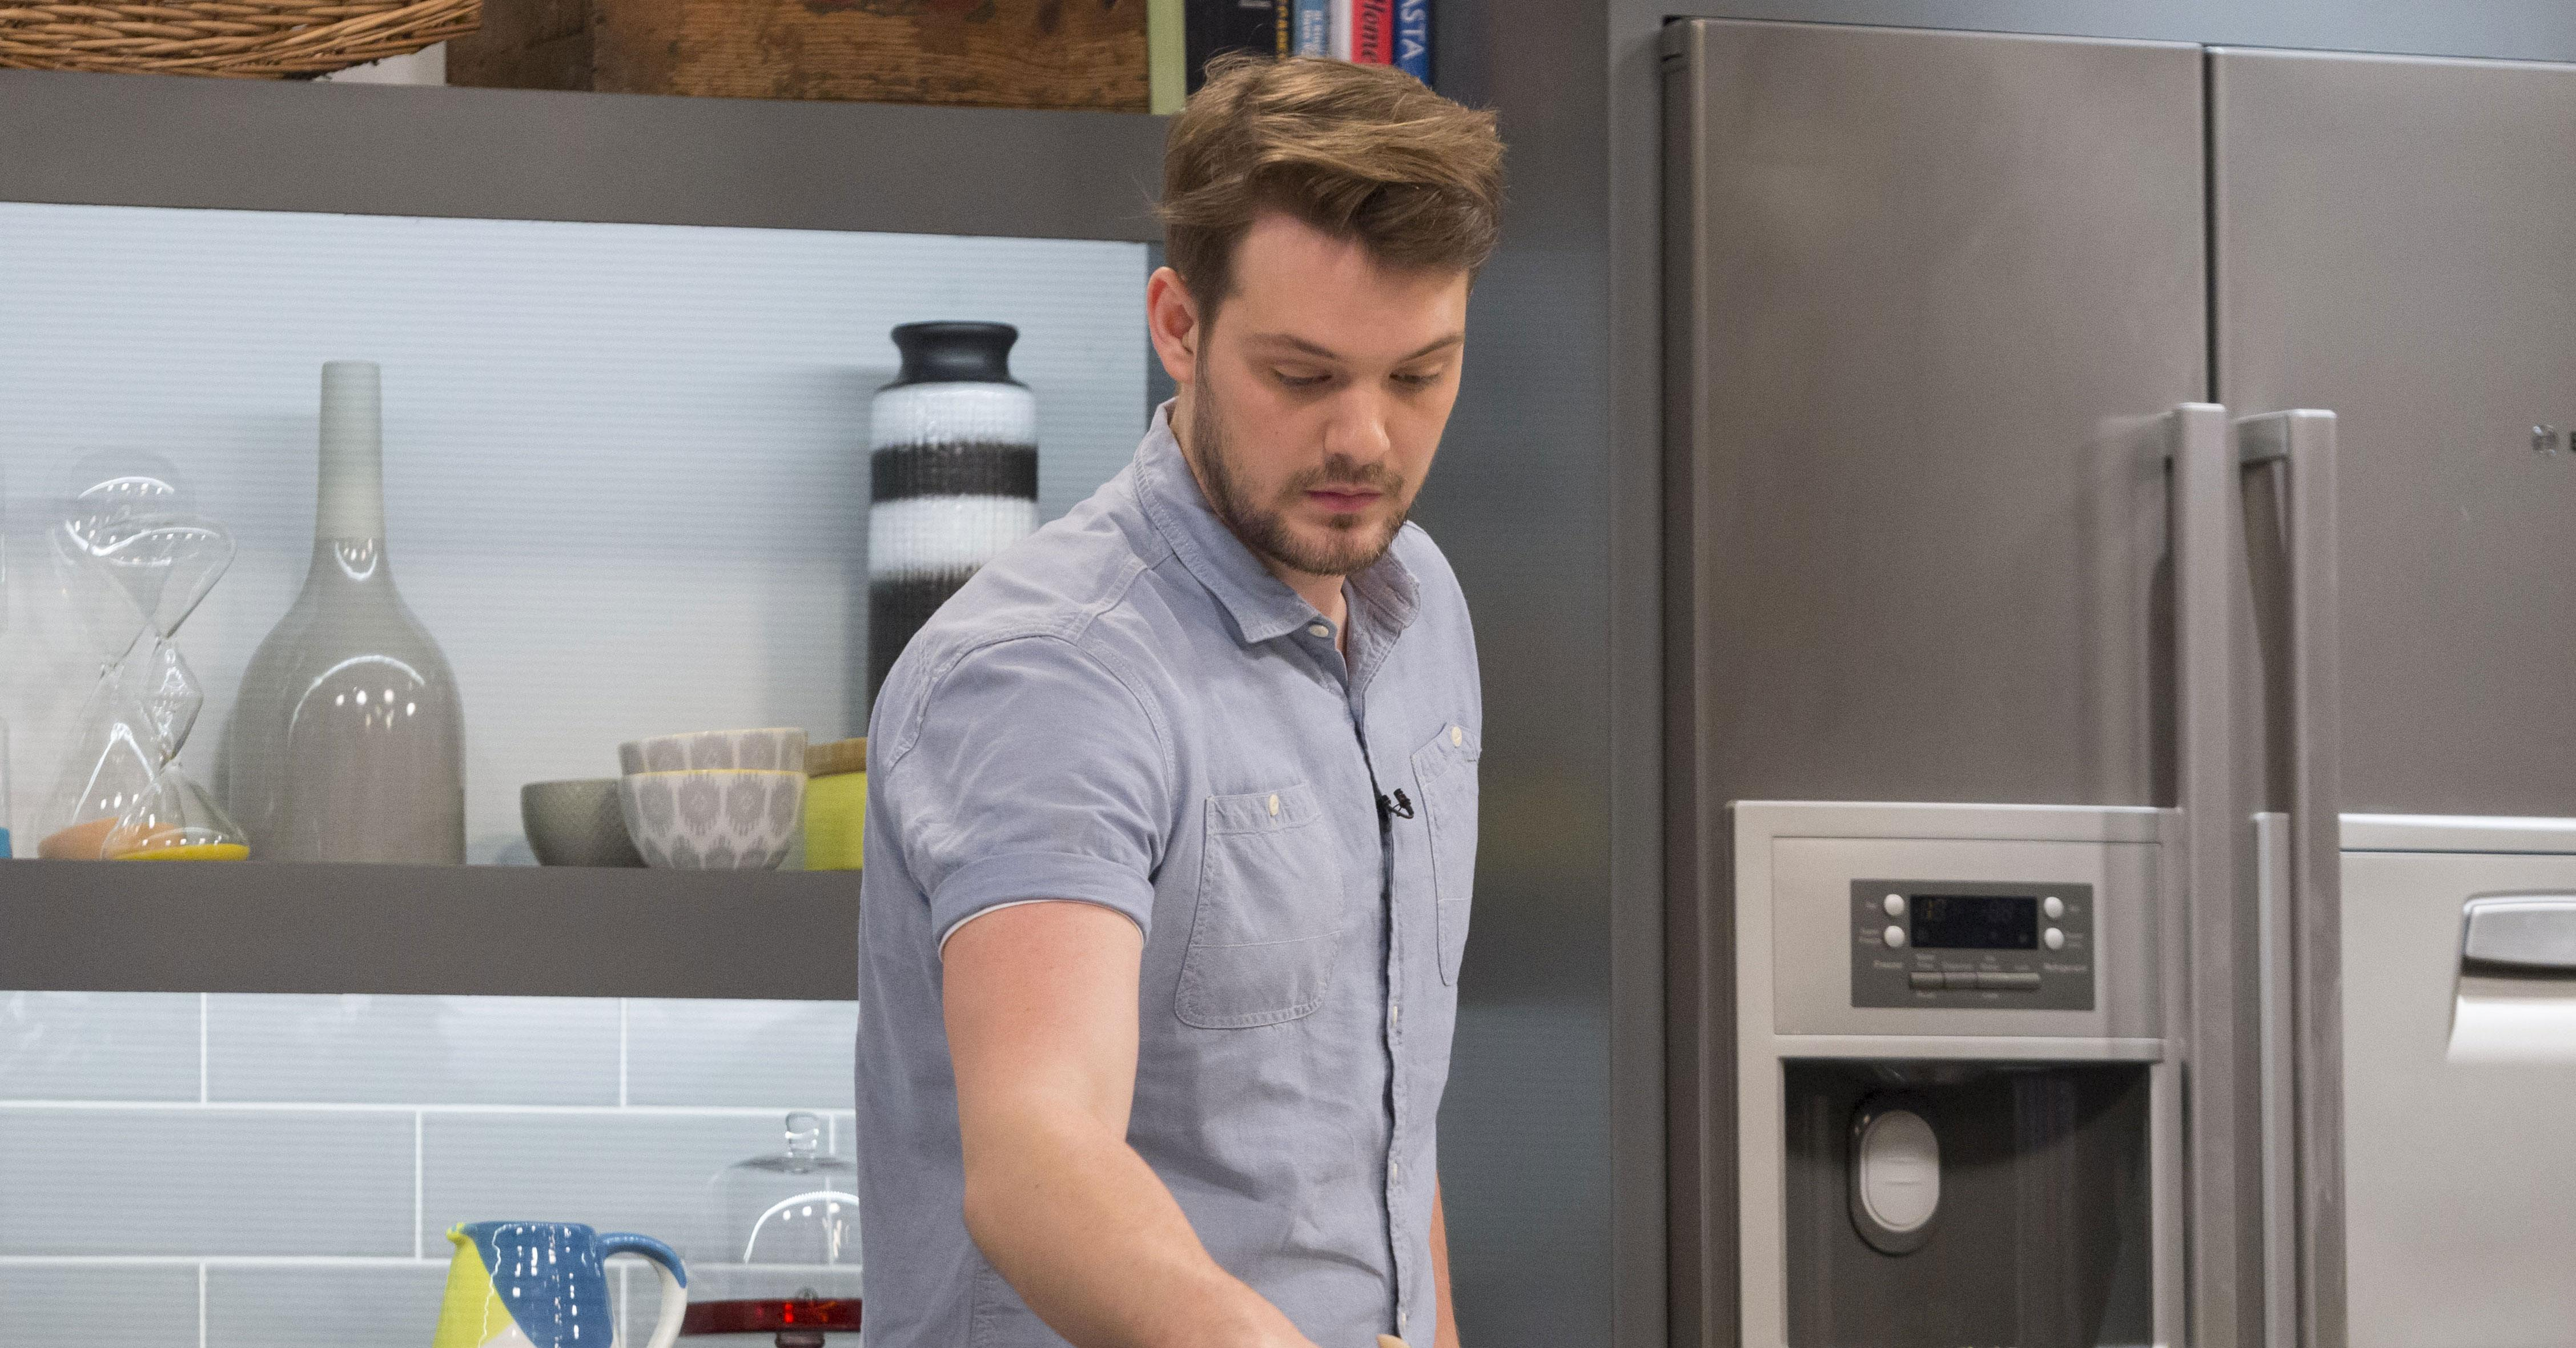 <p>John Whaite quit his fledgling career as a banker for a full-time career as a baker after winning series three of <em>Great British Bake Off </em>in 2012. Whaite's go on to earn a diploma in patisserie and even open his own cooking school based in Lancashire. He has published four cooking books and has presented on a multitude of shows – including <em>Lorraine, This Morning, What's Cooking? </em>and <em>Sunday Brunch.</em><br>(REX/Shutterstock) </p>